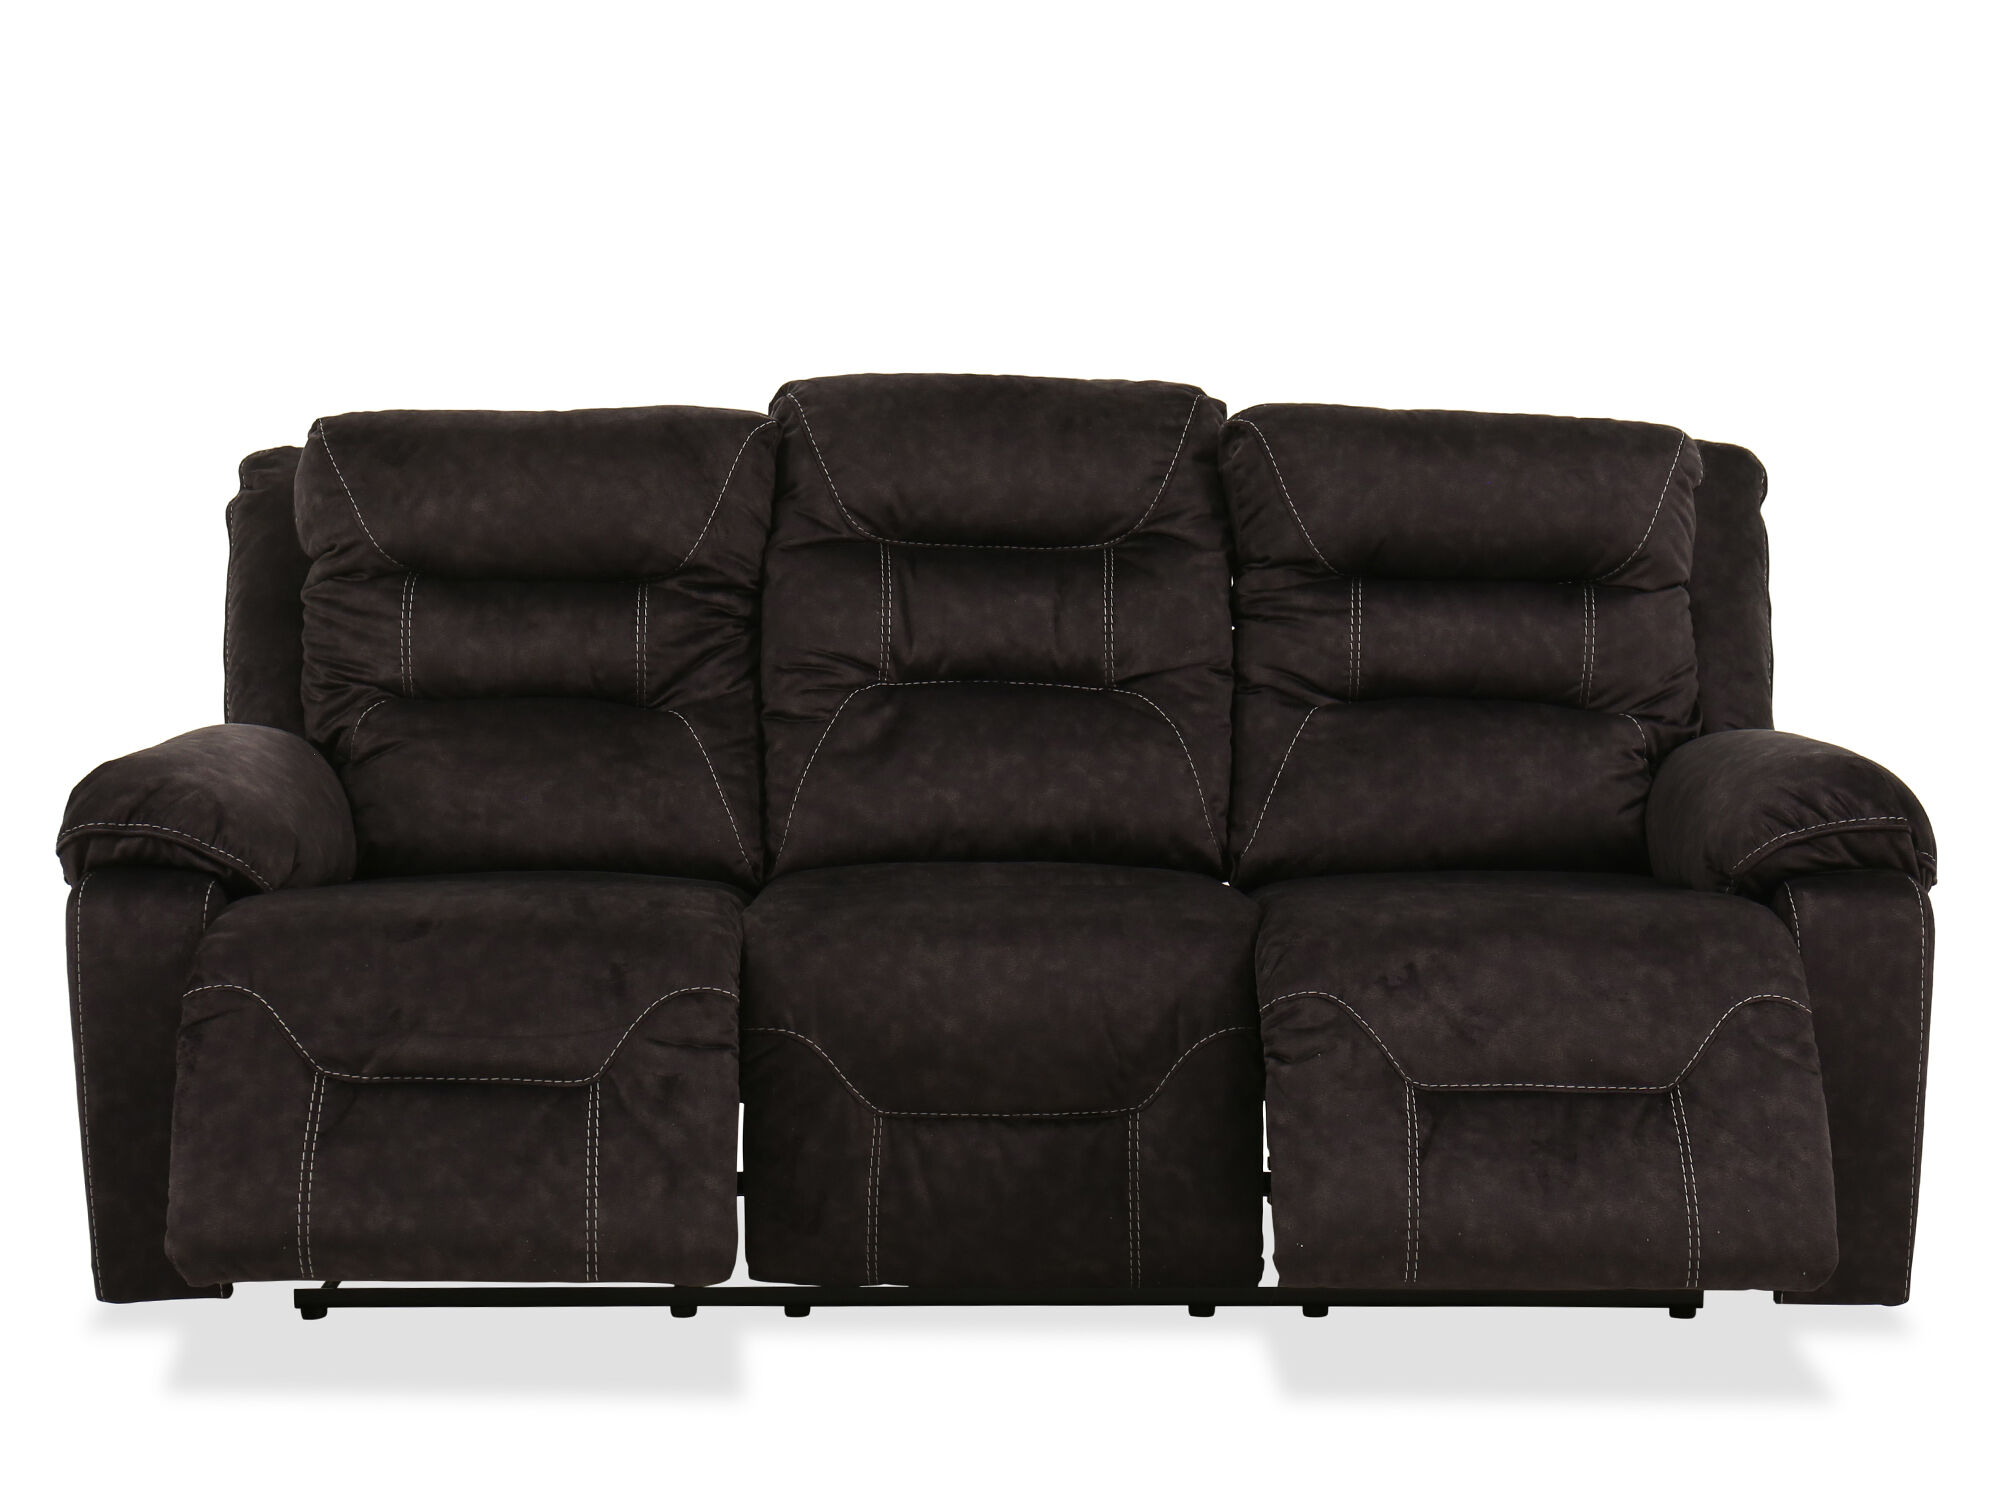 86 Quot Power Reclining Sofa In Gray Mathis Brothers Furniture